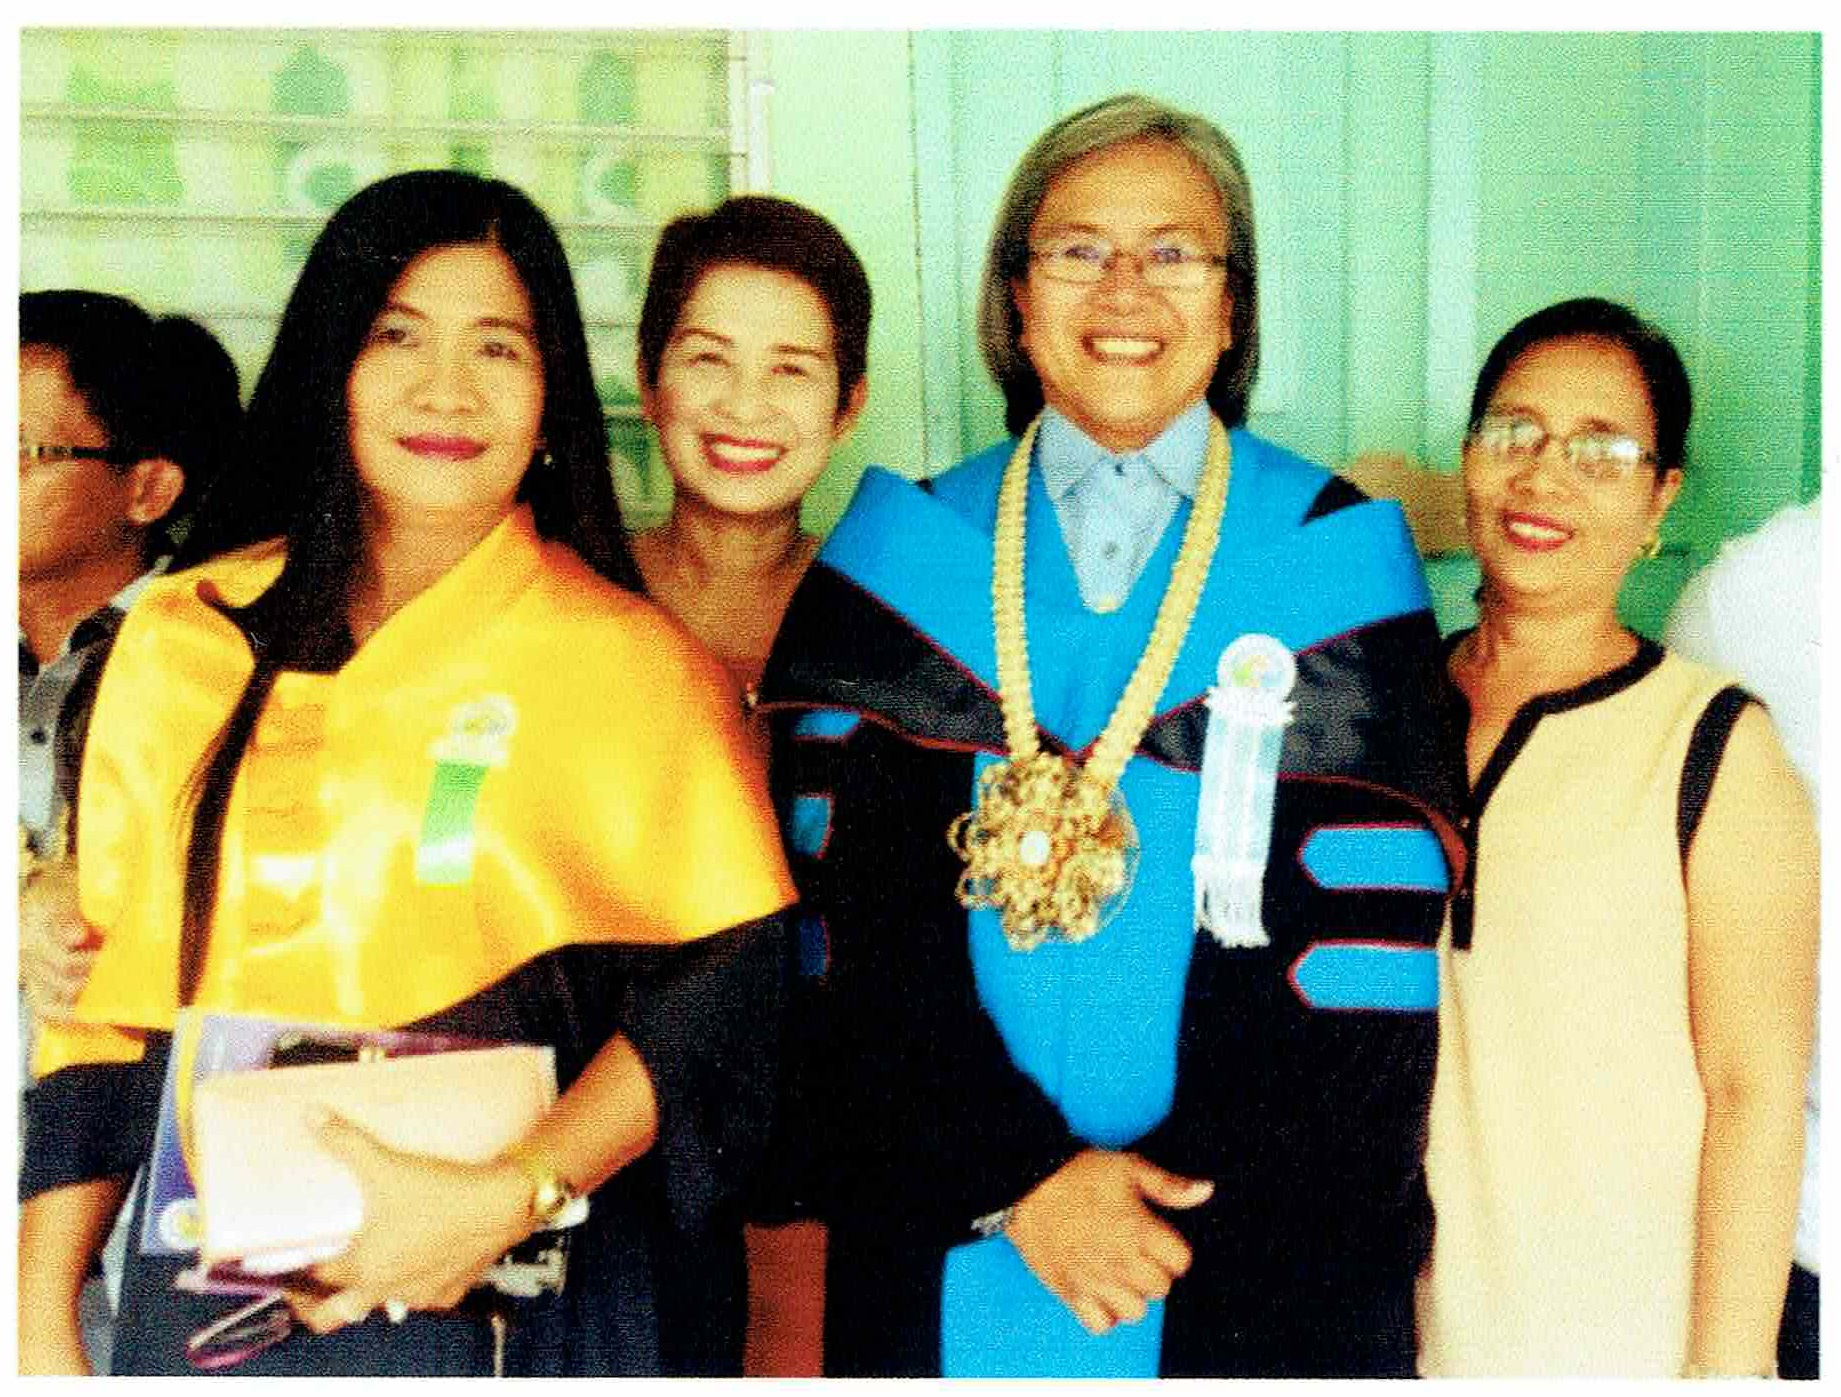 <em>Col. Gernale (above, center) with high school classmates Ms. Marife Glomar (right), Prof. Corazon Bongalosa and Ms. Mariesusan Caudilla of Bulan Campus</em>